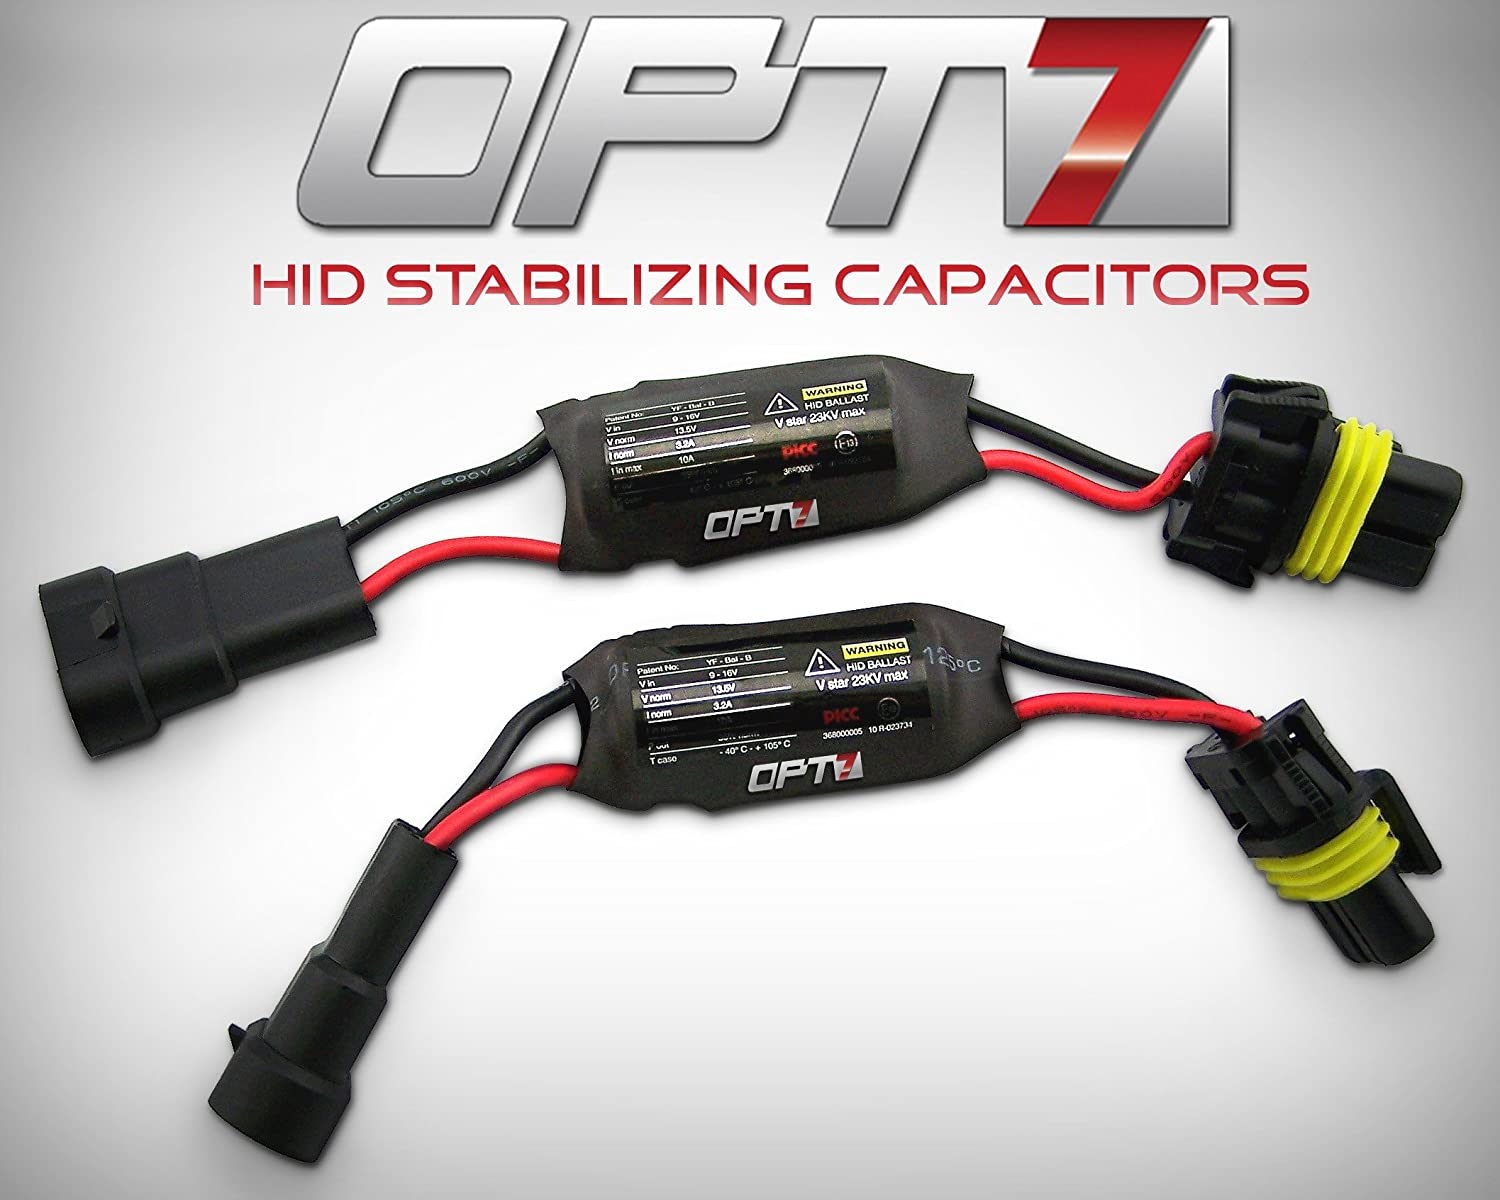 Opt7 Hid Anti Flicker Capacitors Warning Light Canceler 12 Volt Wiring Harness Dodge Ram Error Eliminator Pair Automotive